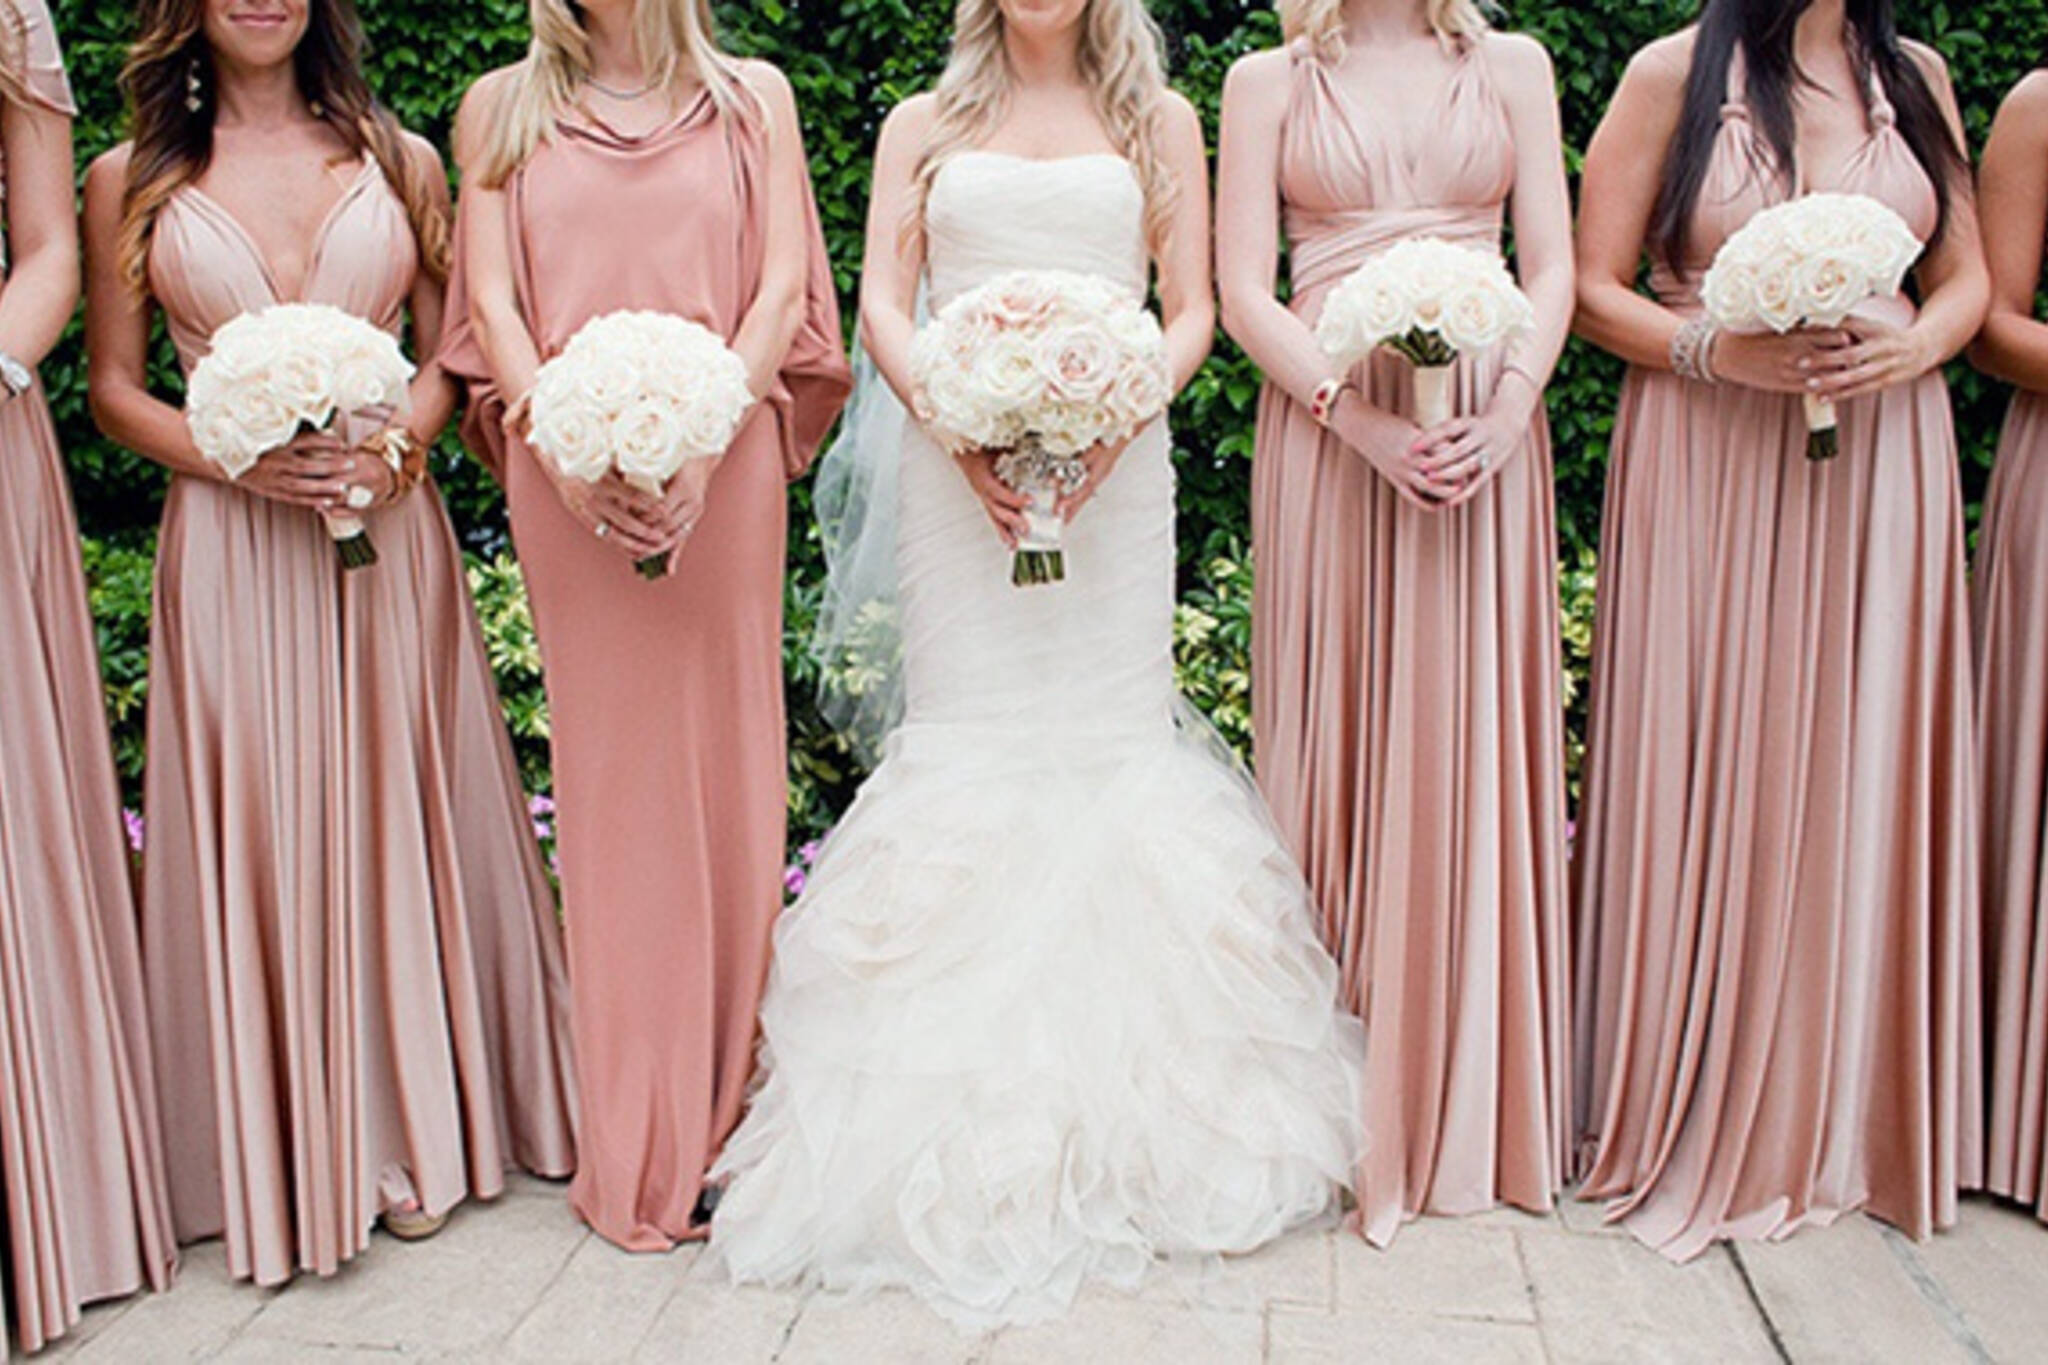 The best bridesmaid dresses in toronto bridesmaid dresses toronto ombrellifo Choice Image